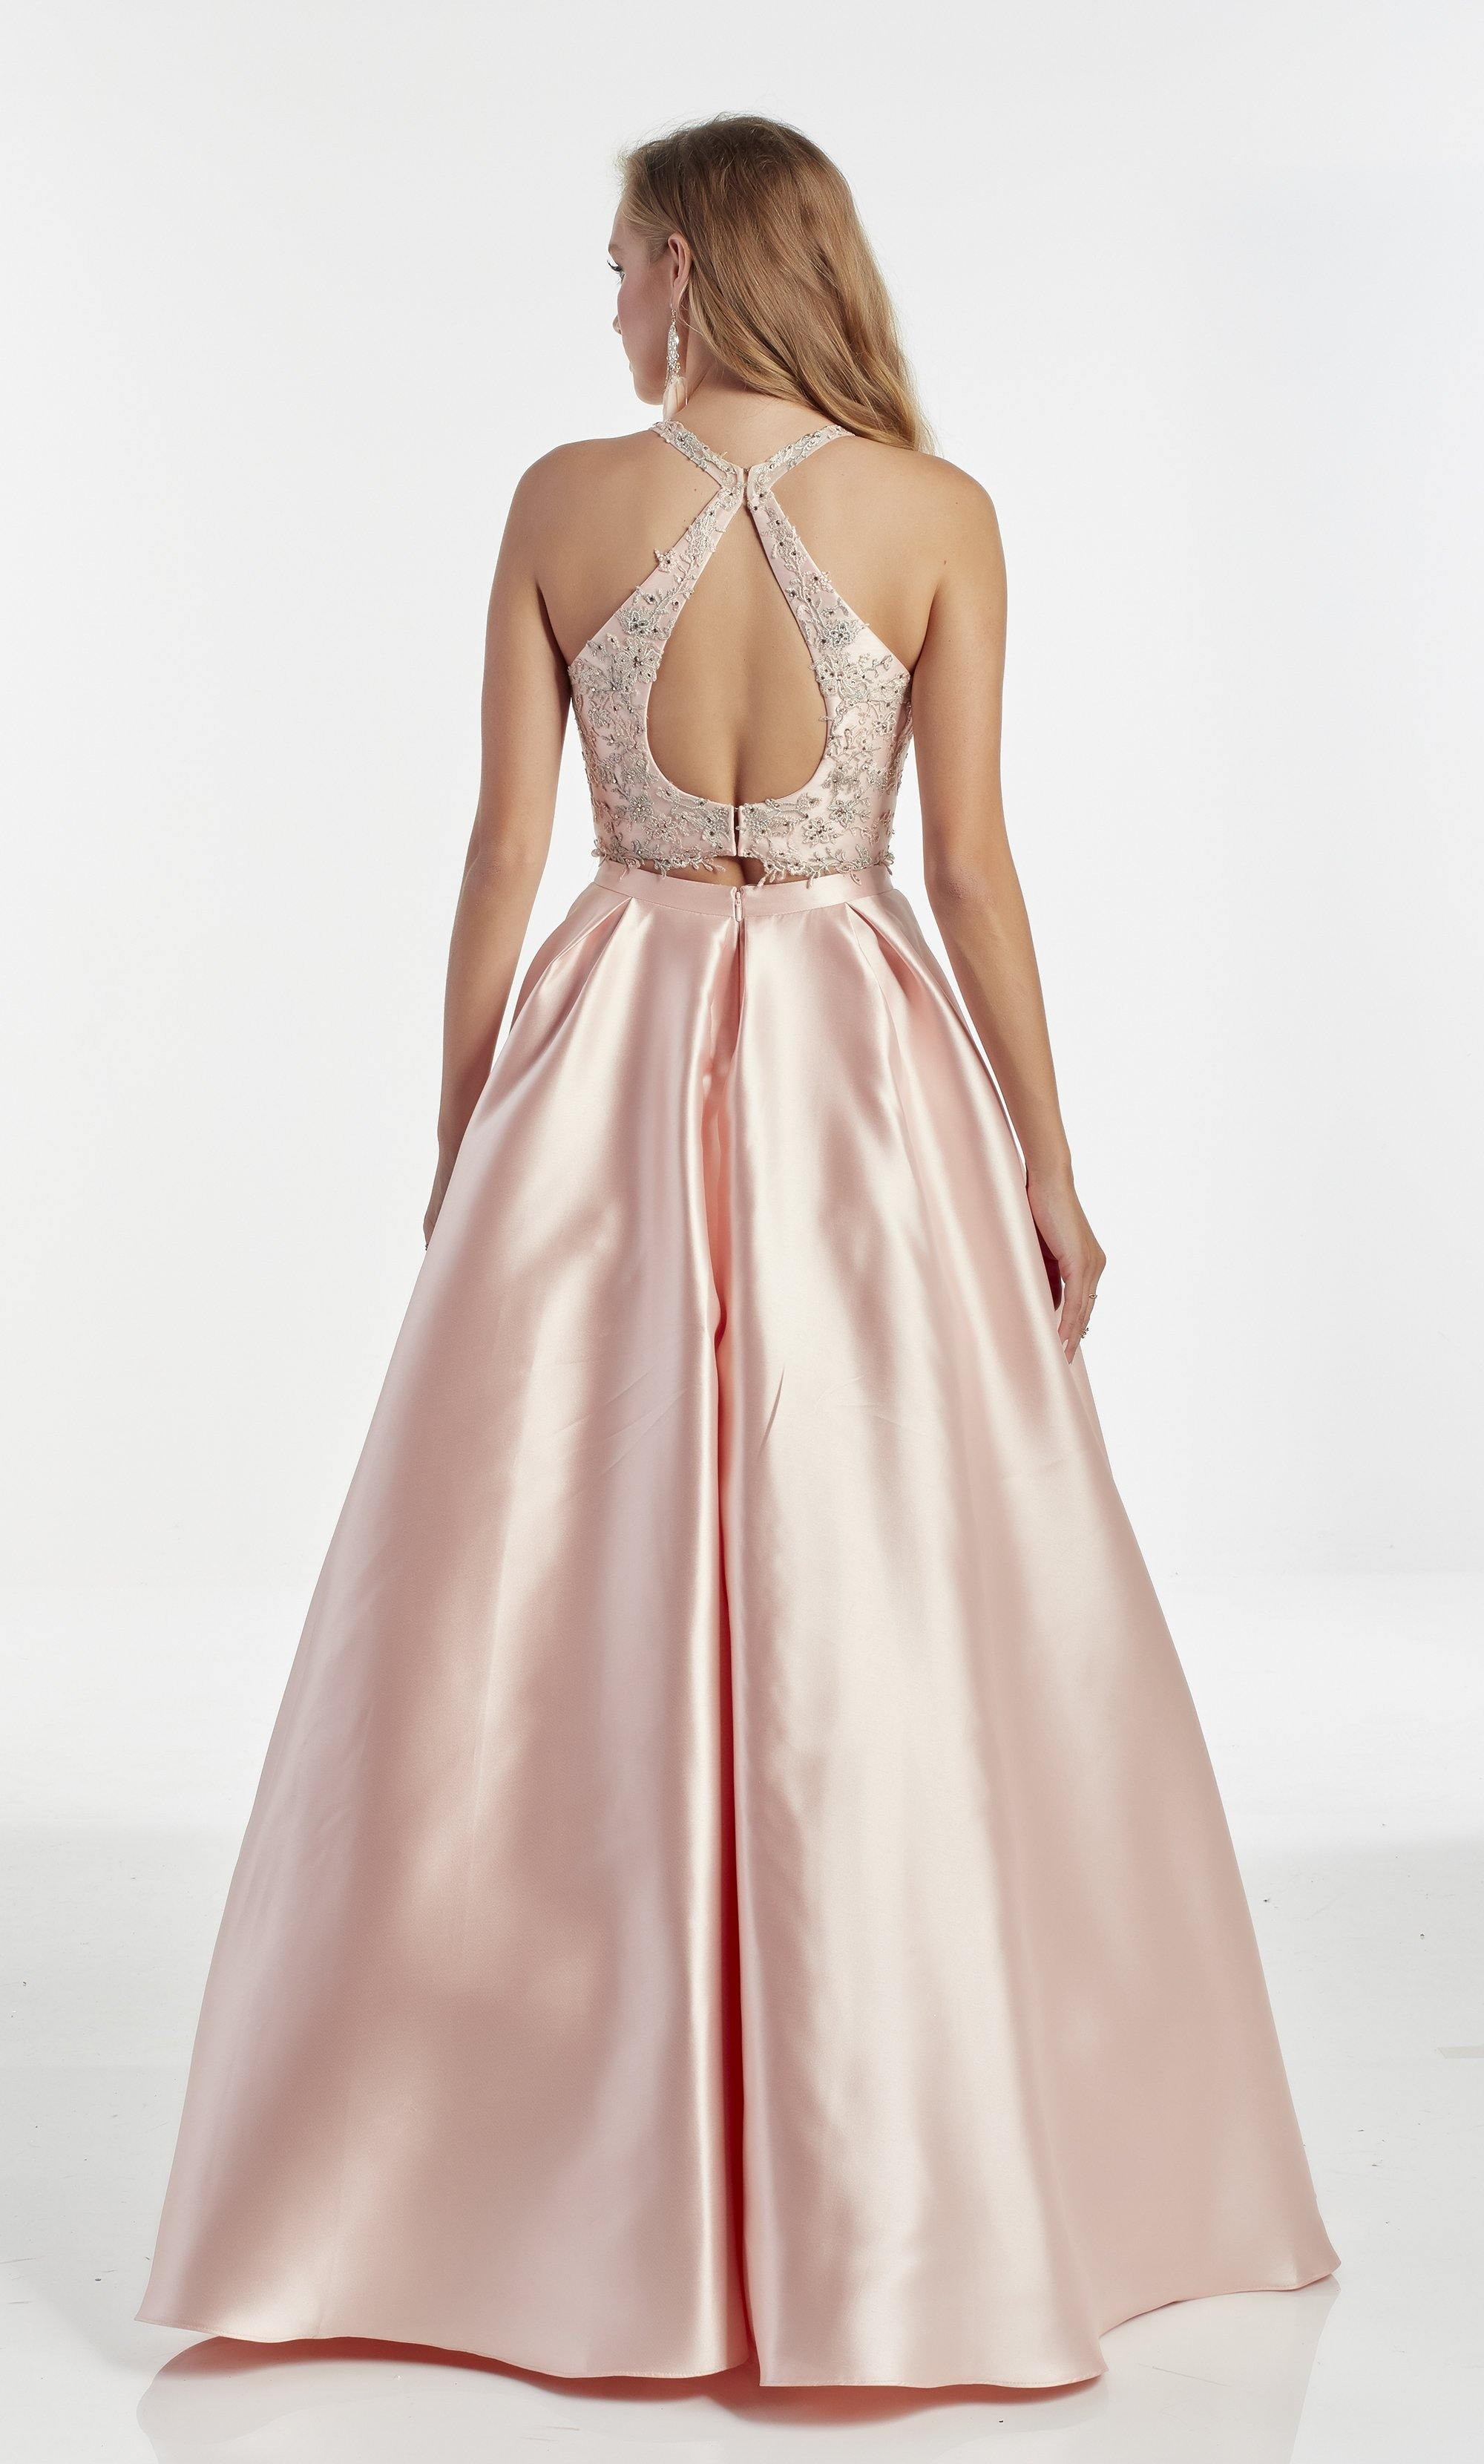 French Pink ballgown with an illusion neckline and embroidered bodice with jewel accents